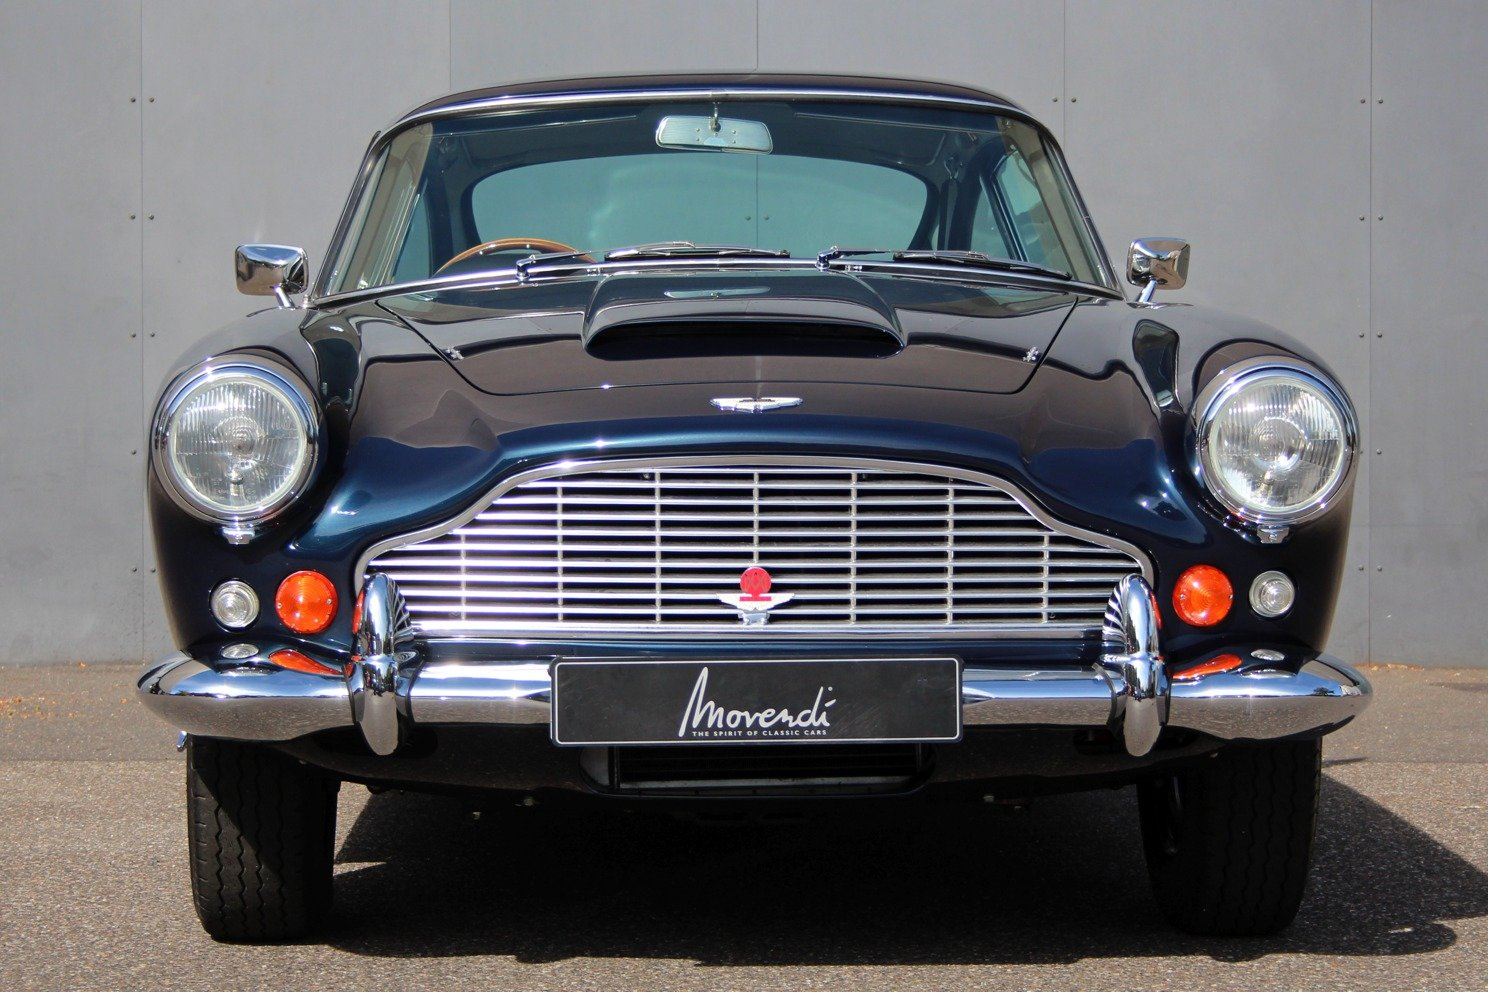 1963 Aston Martin DB4 Series V RHD - Ex. Victor Gaunlett For Sale (picture 6 of 6)